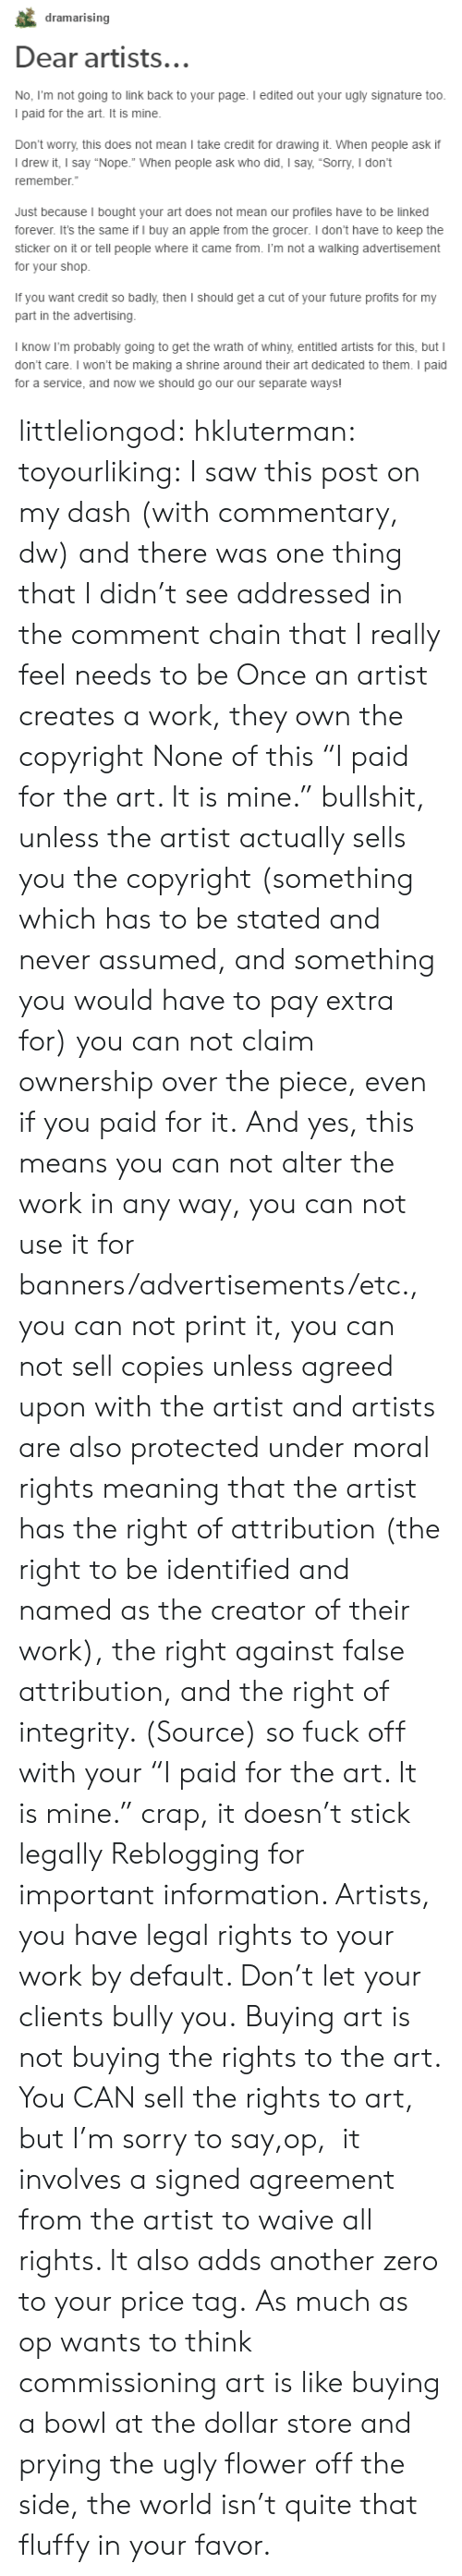 """Dollar Store: dramarising  Dear artists..  No, Fm not going to link back to your page. I edited out your ugly signature too  I paid for the art. It is mine.  Don't worry, this does not mean I take credit for drawing it. When people ask if  I drew it, I say """"Nope."""" When people ask who did, I say, """"Sorry, I don't  remember.  Just because I bought your art does not mean our profiles have to be linked  forever. It's the same if I buy an apple from the grocer. I don't have to keep the  sticker on it or tell people where it came from. I'm not a walking advertisement  for your shop.  If you want credit so badly,then I should get a cut of your tuture profmts for my  part in the advertising  I know I'm probably going to get the wrath of whiny, entitled artists for this, but I  don't care. I won't be making a shrine around their art dedicated to them. I paid  for a service, and now we should go our our separate ways! littleliongod: hkluterman:  toyourliking:  I saw this post on my dash (with commentary, dw) and there was one thing that I didn't see addressed in the comment chain that I really feel needs to be Once an artist creates a work, they own the copyright None of this""""I paid for the art. It is mine."""" bullshit, unless the artist actually sells you the copyright (something which has to be stated and never assumed, and something you would have to pay extra for) you can not claim ownership over the piece, even if you paid for it. And yes, this means you can not alter the work in any way, you can not use it for banners/advertisements/etc., you can not print it, you can not sell copiesunless agreed upon with the artist and artists are also protected under moral rights meaning that the artist has the right of attribution (the right to be identified and named as the creator of their work), the right against false attribution, and the right of integrity. (Source) so fuck off with your """"I paid for the art. It is mine."""" crap, it doesn't stick legally  Reblogging for important inf"""